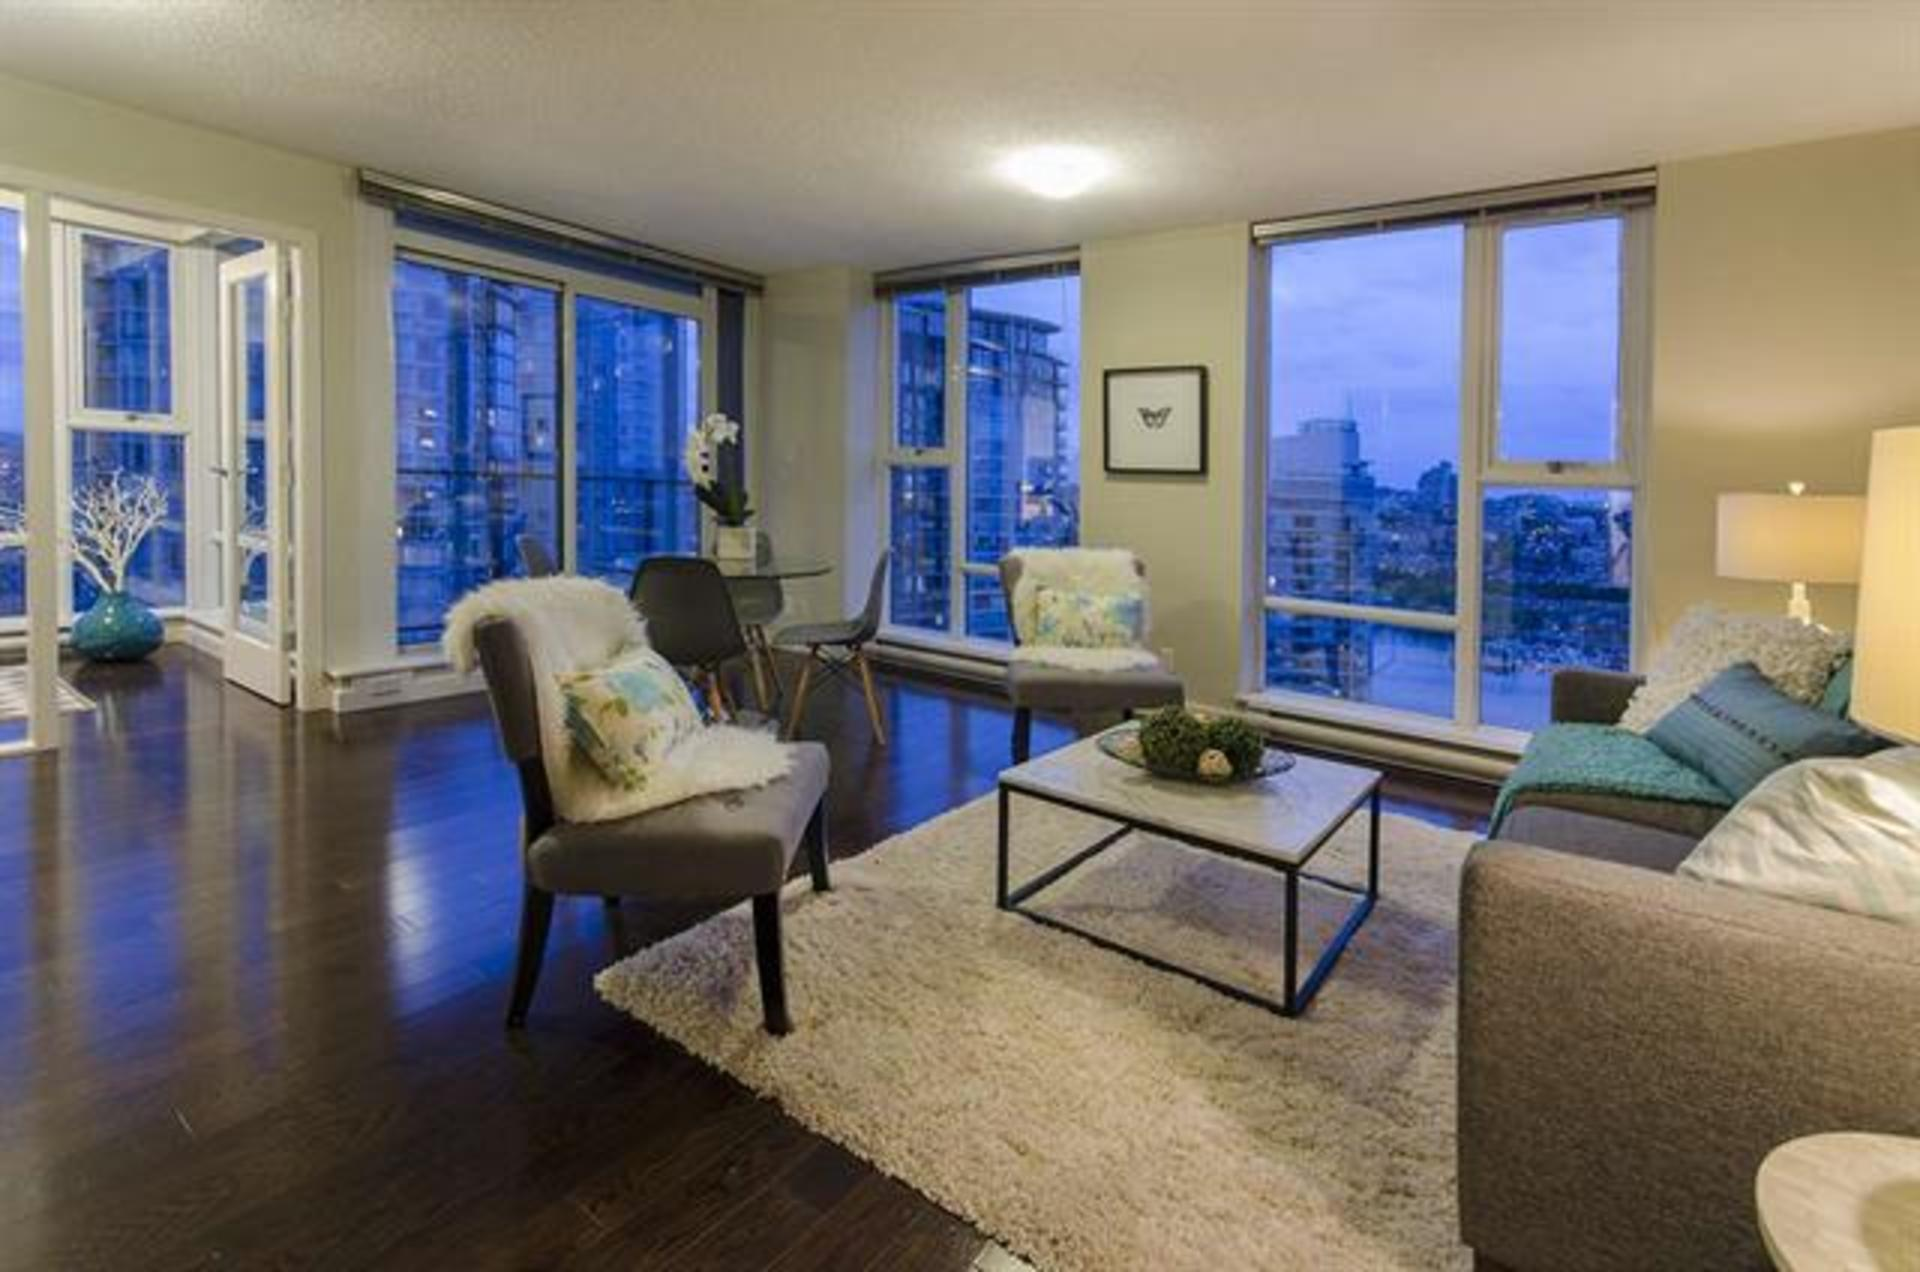 262087171-7 at 2806 - 583 Beach Crescent, Yaletown, Vancouver West